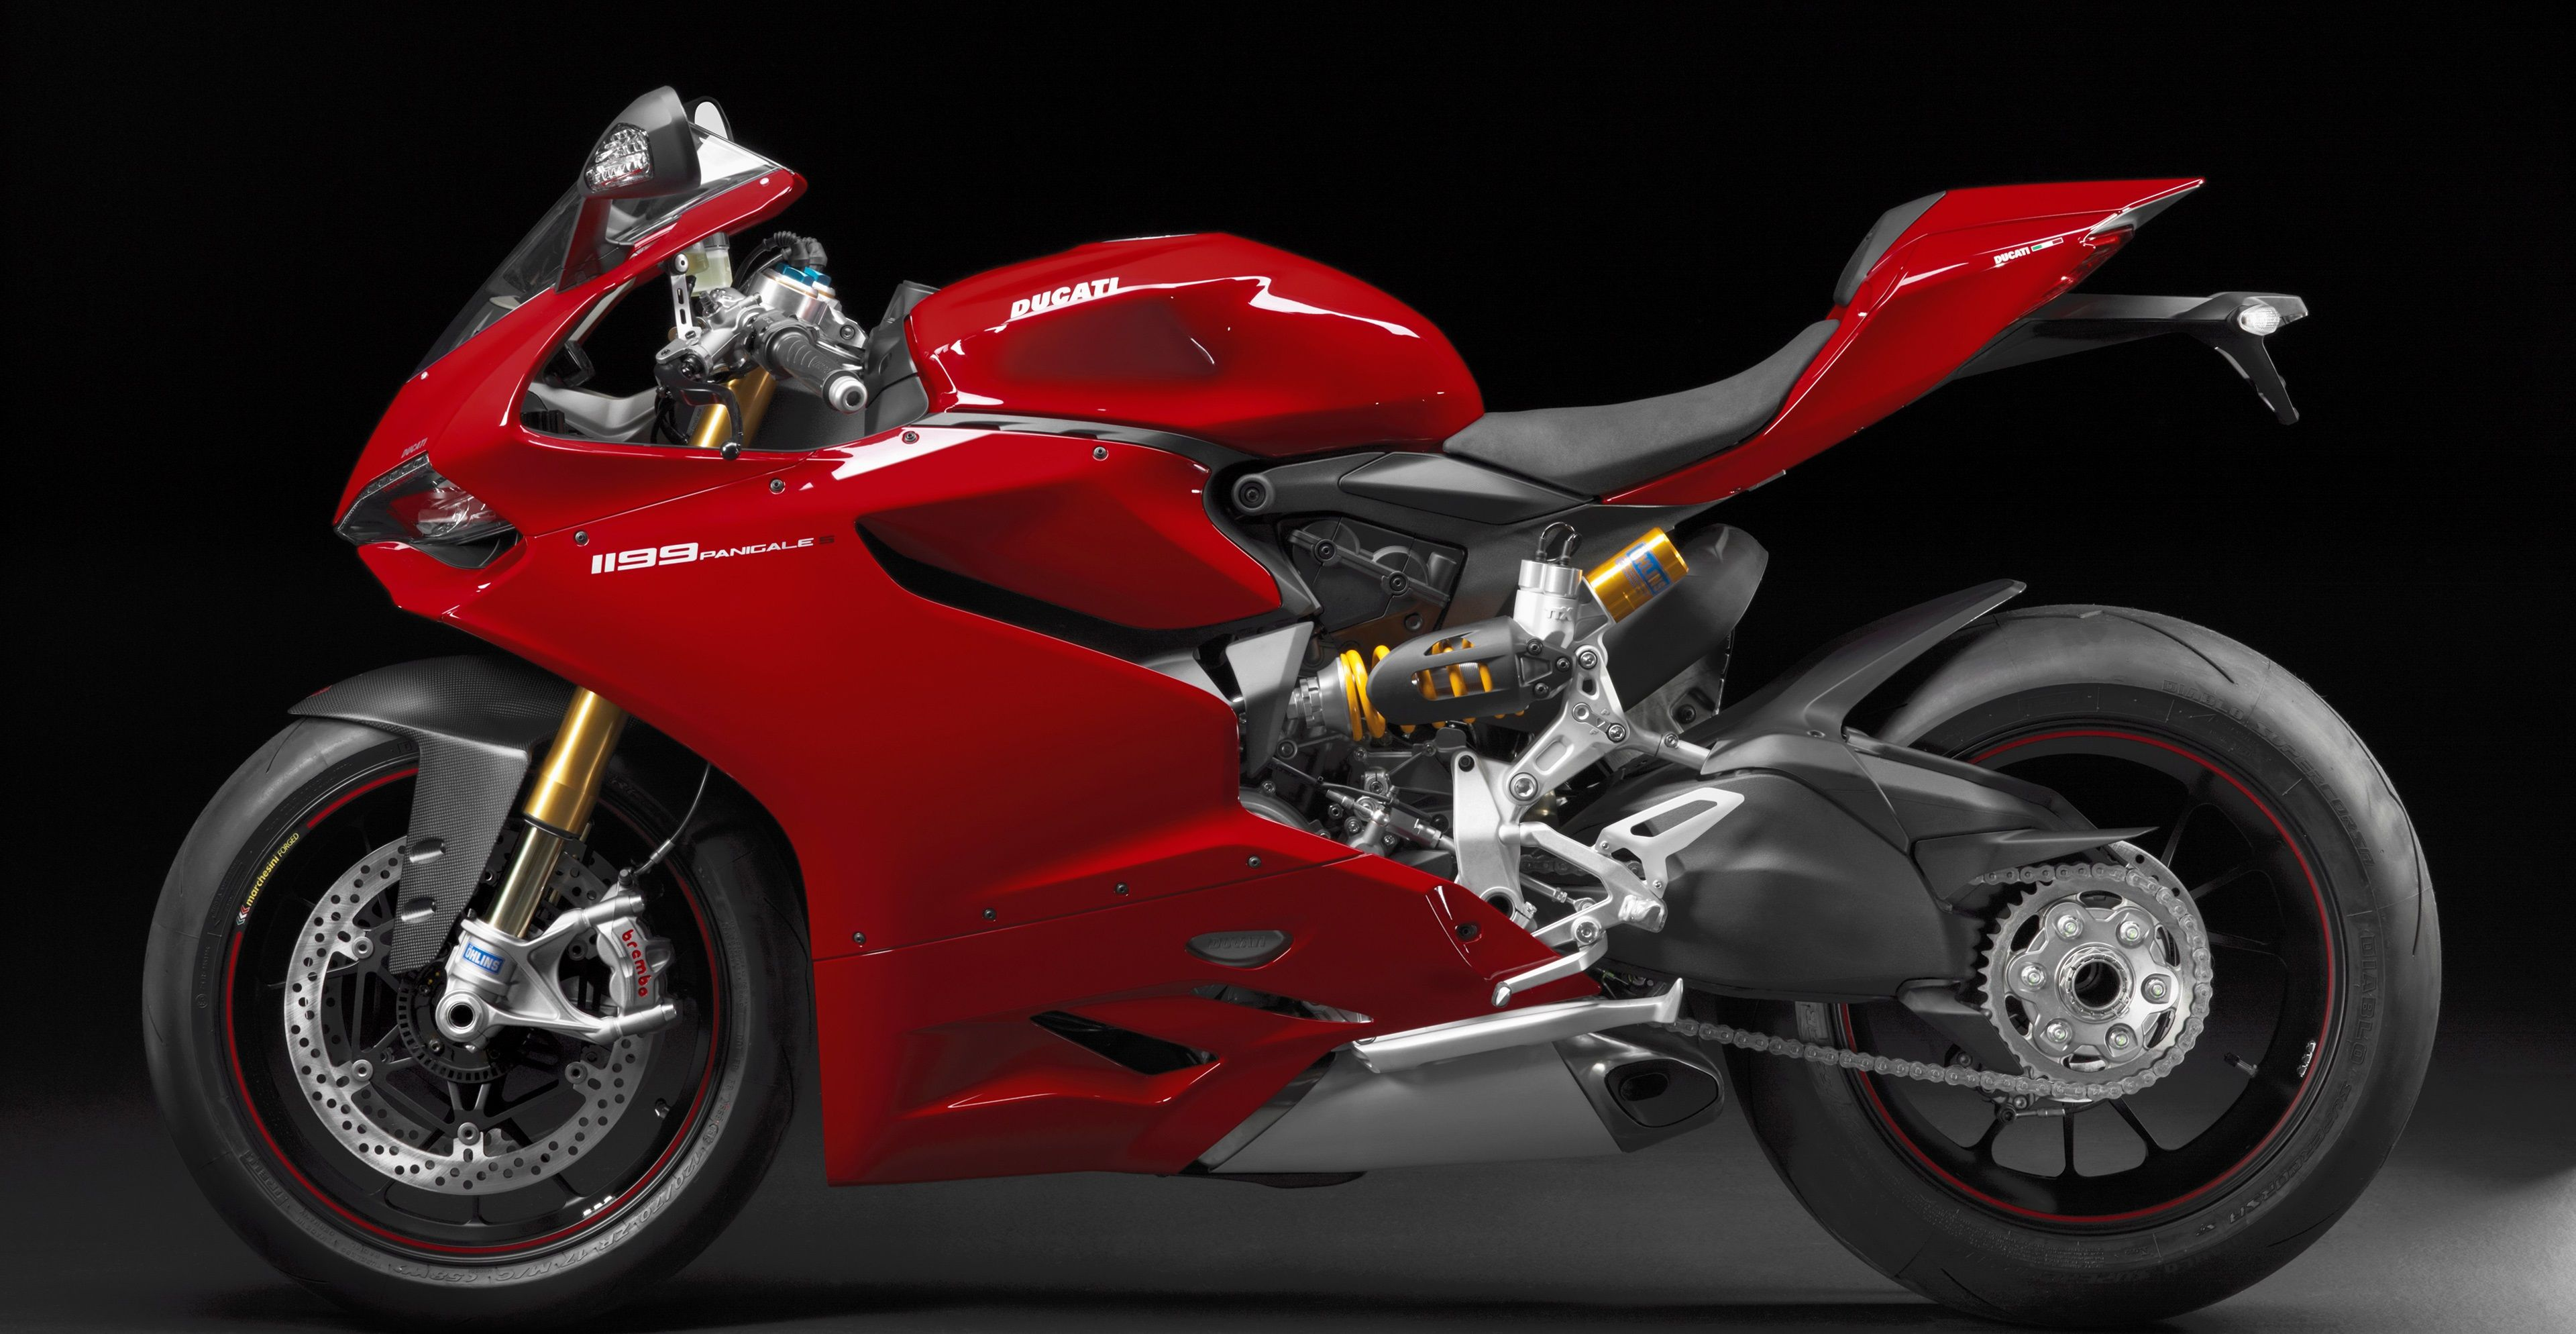 ducati 1199 panigale s wallpaper hd : get free top quality ducati